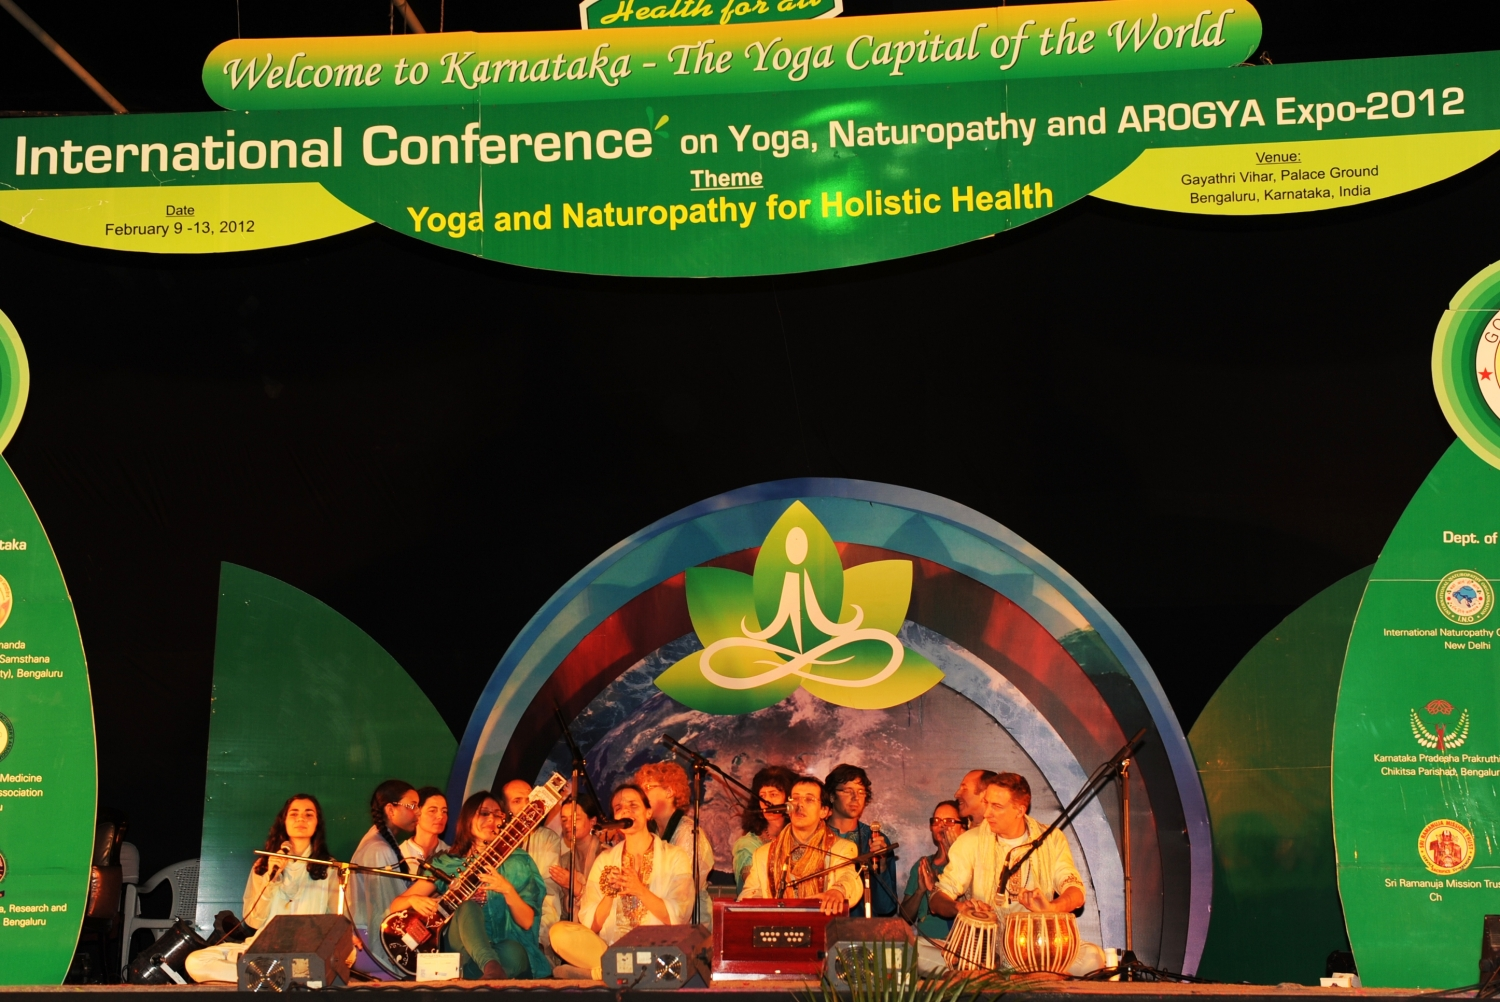 International Conference on Yoga, Naturoathy and AROGY, Bengaluru, 2012